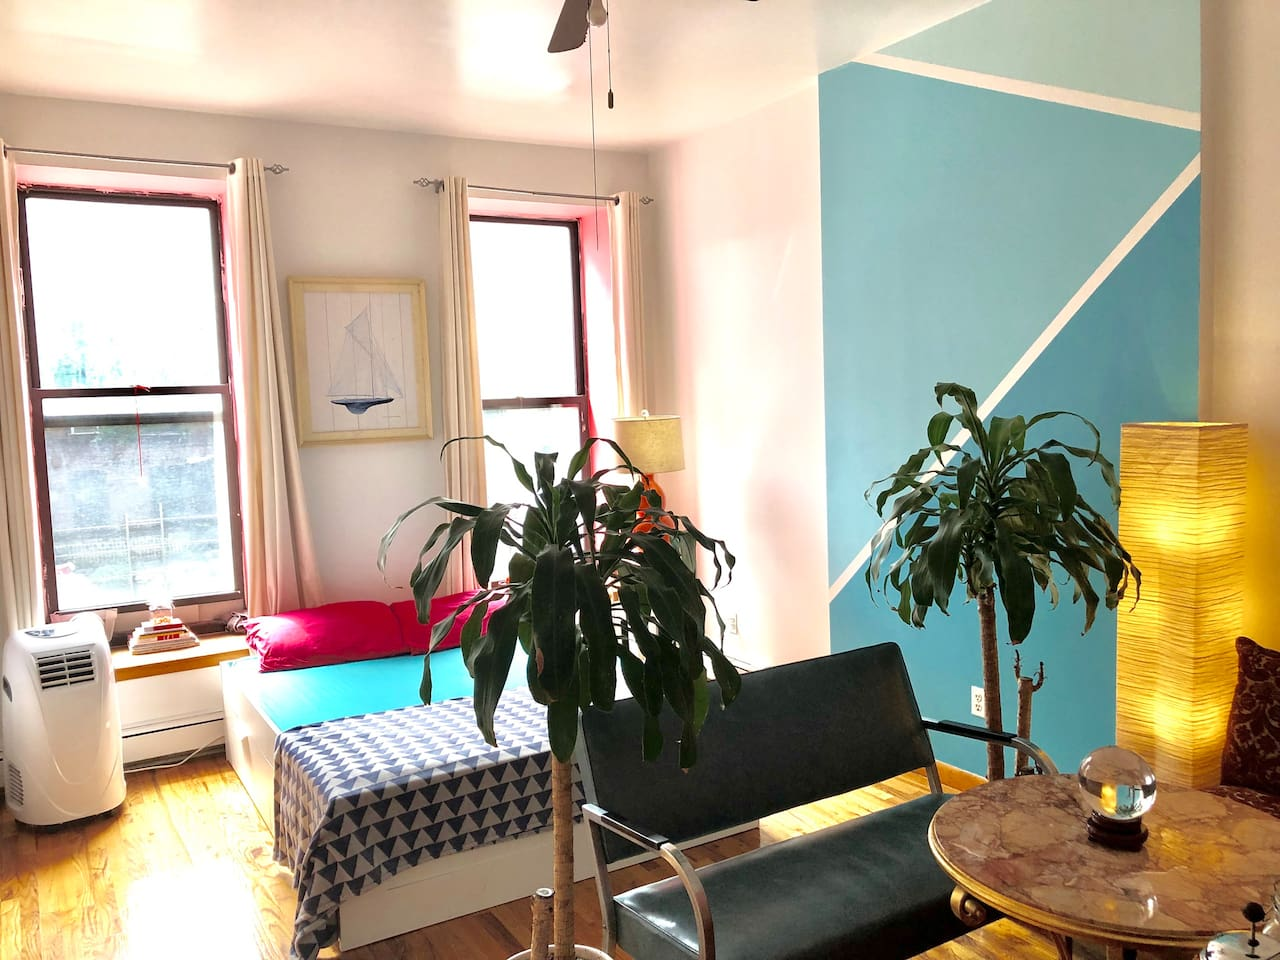 This is as much of the room as we could capture in a single shot. We've made the most of the generously sized space with our new arrangement - enjoy a good night's sleep and wake up to the french press in your cozy living area!